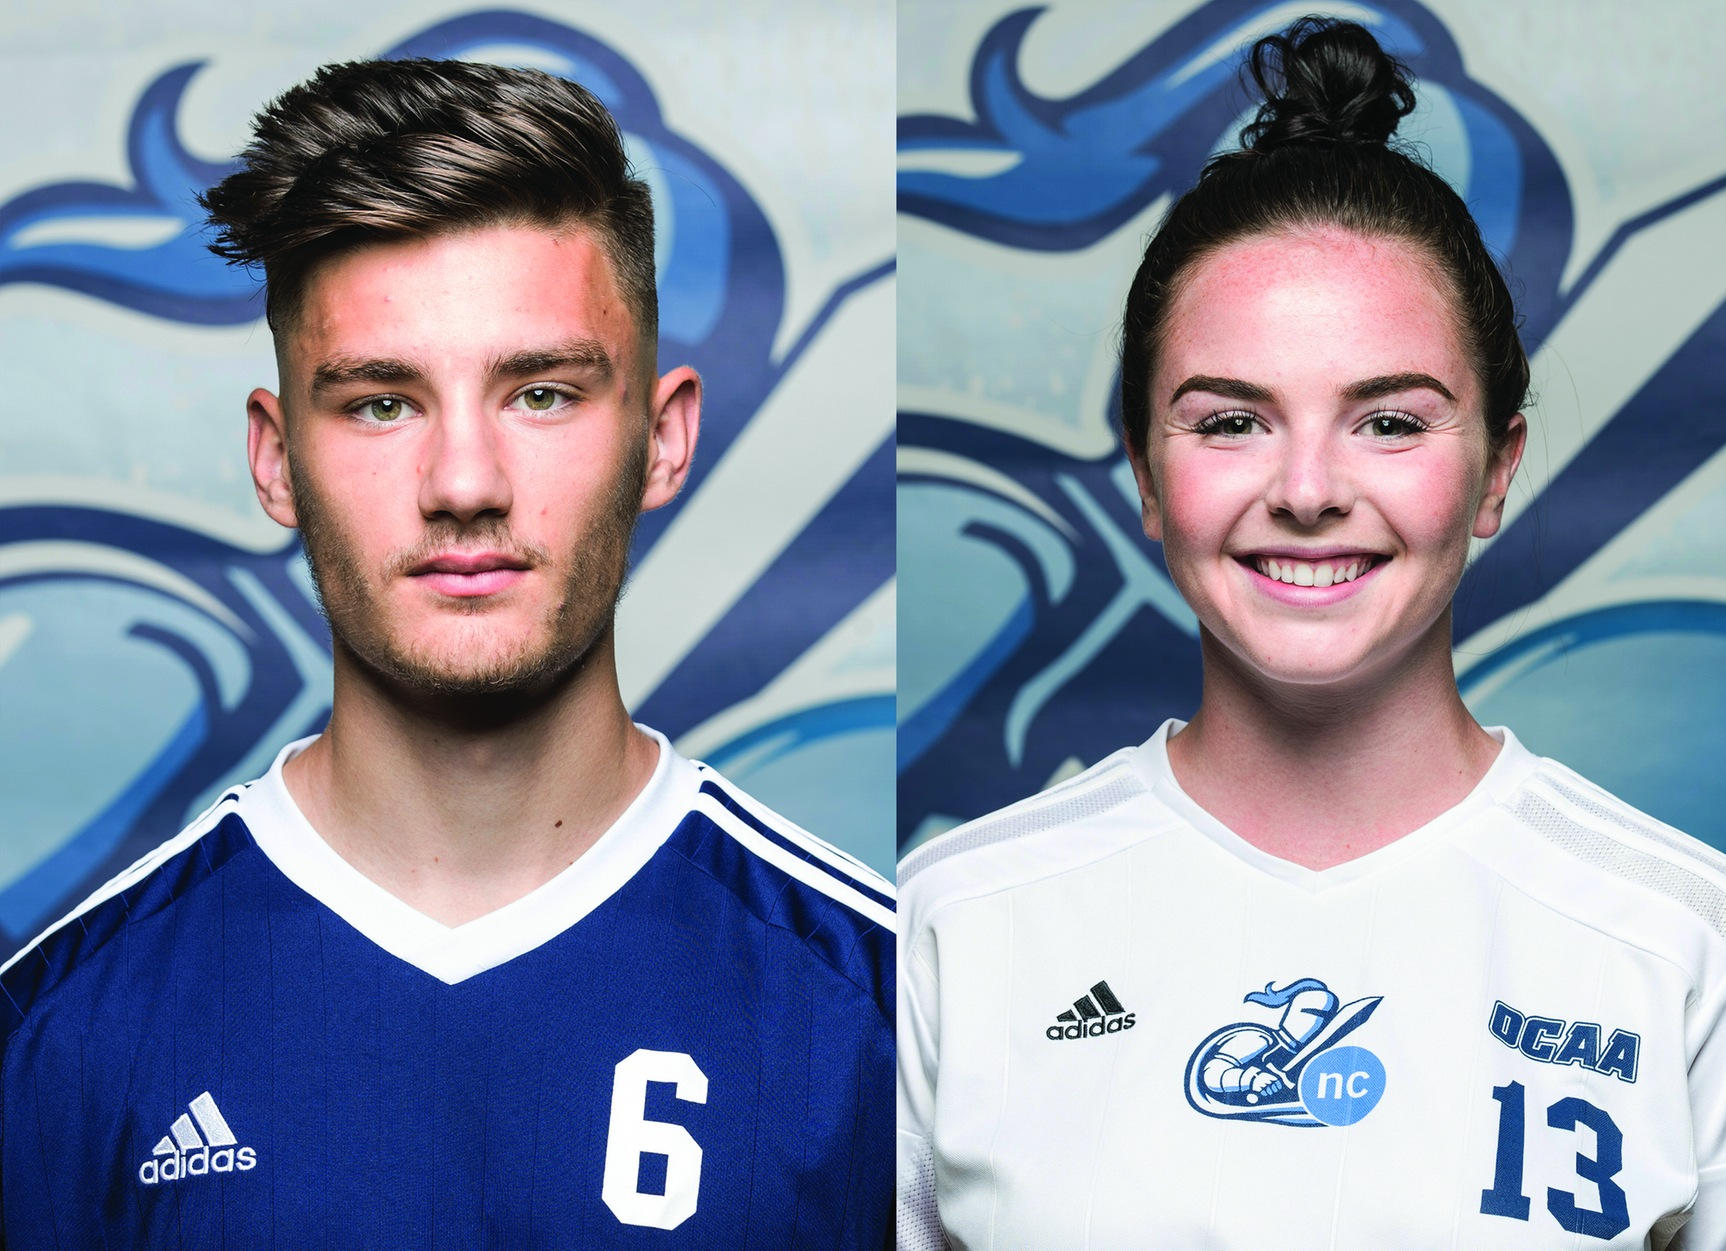 NEWS: Diacur and Halliday named Athletes of the Week